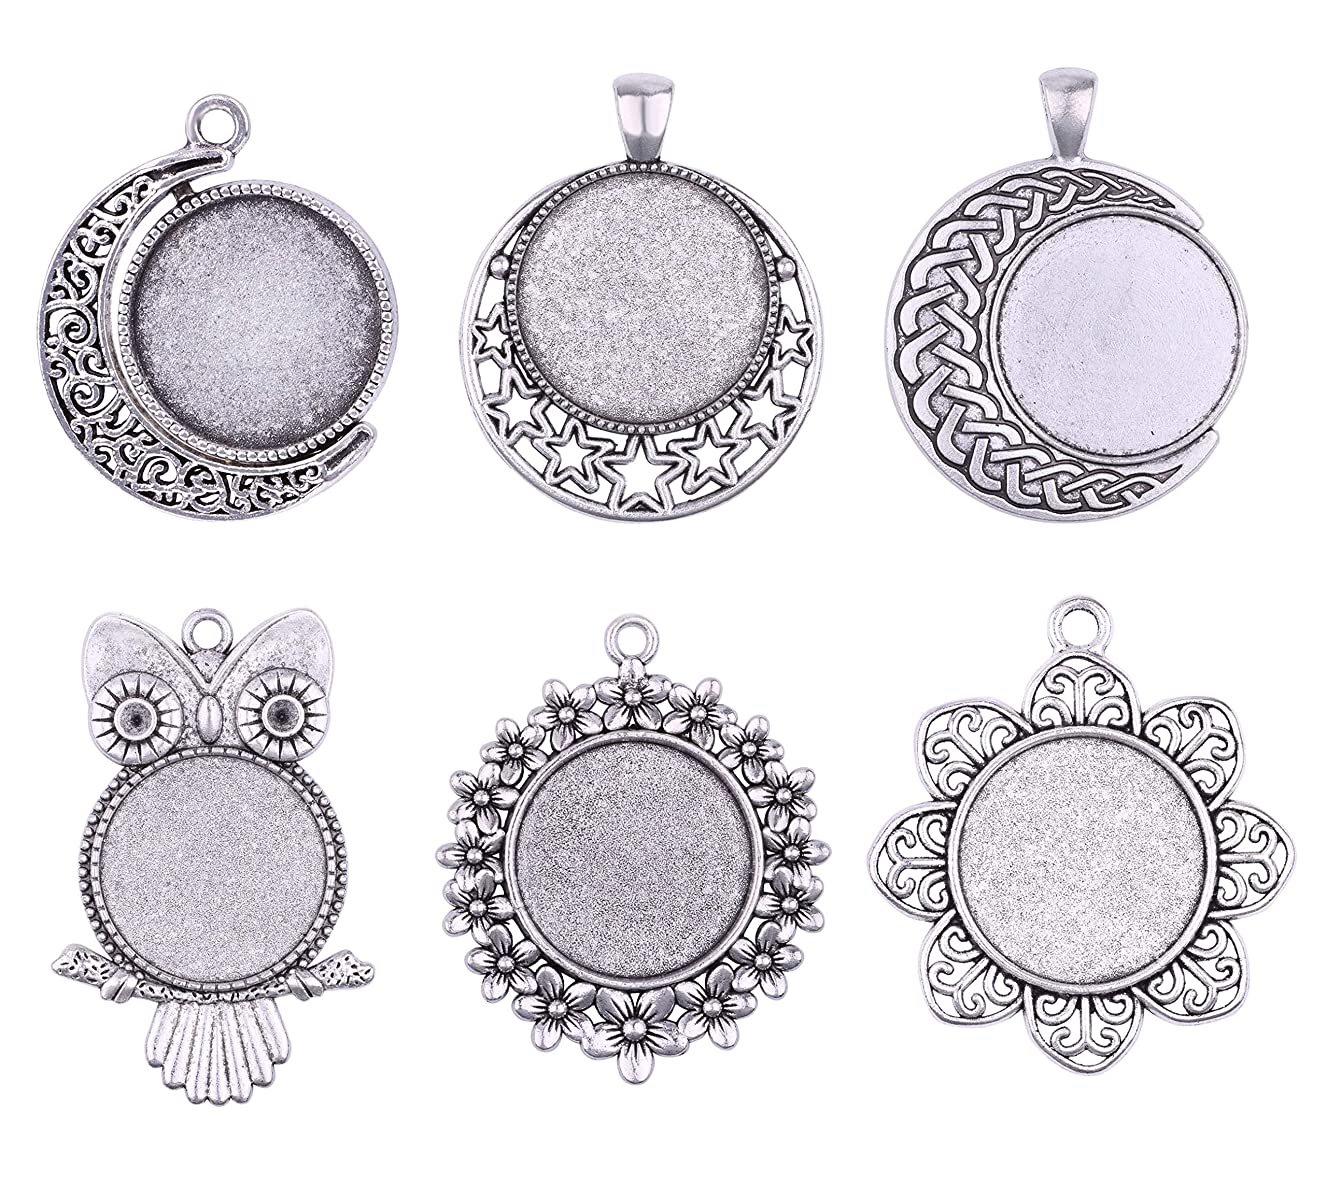 12pcs 25mm Mix Owl Flower Moon Round Pendant Rotation Trays Cameo Setting Cabochon Dome for Crafting DIY Jewelry Making (11562)